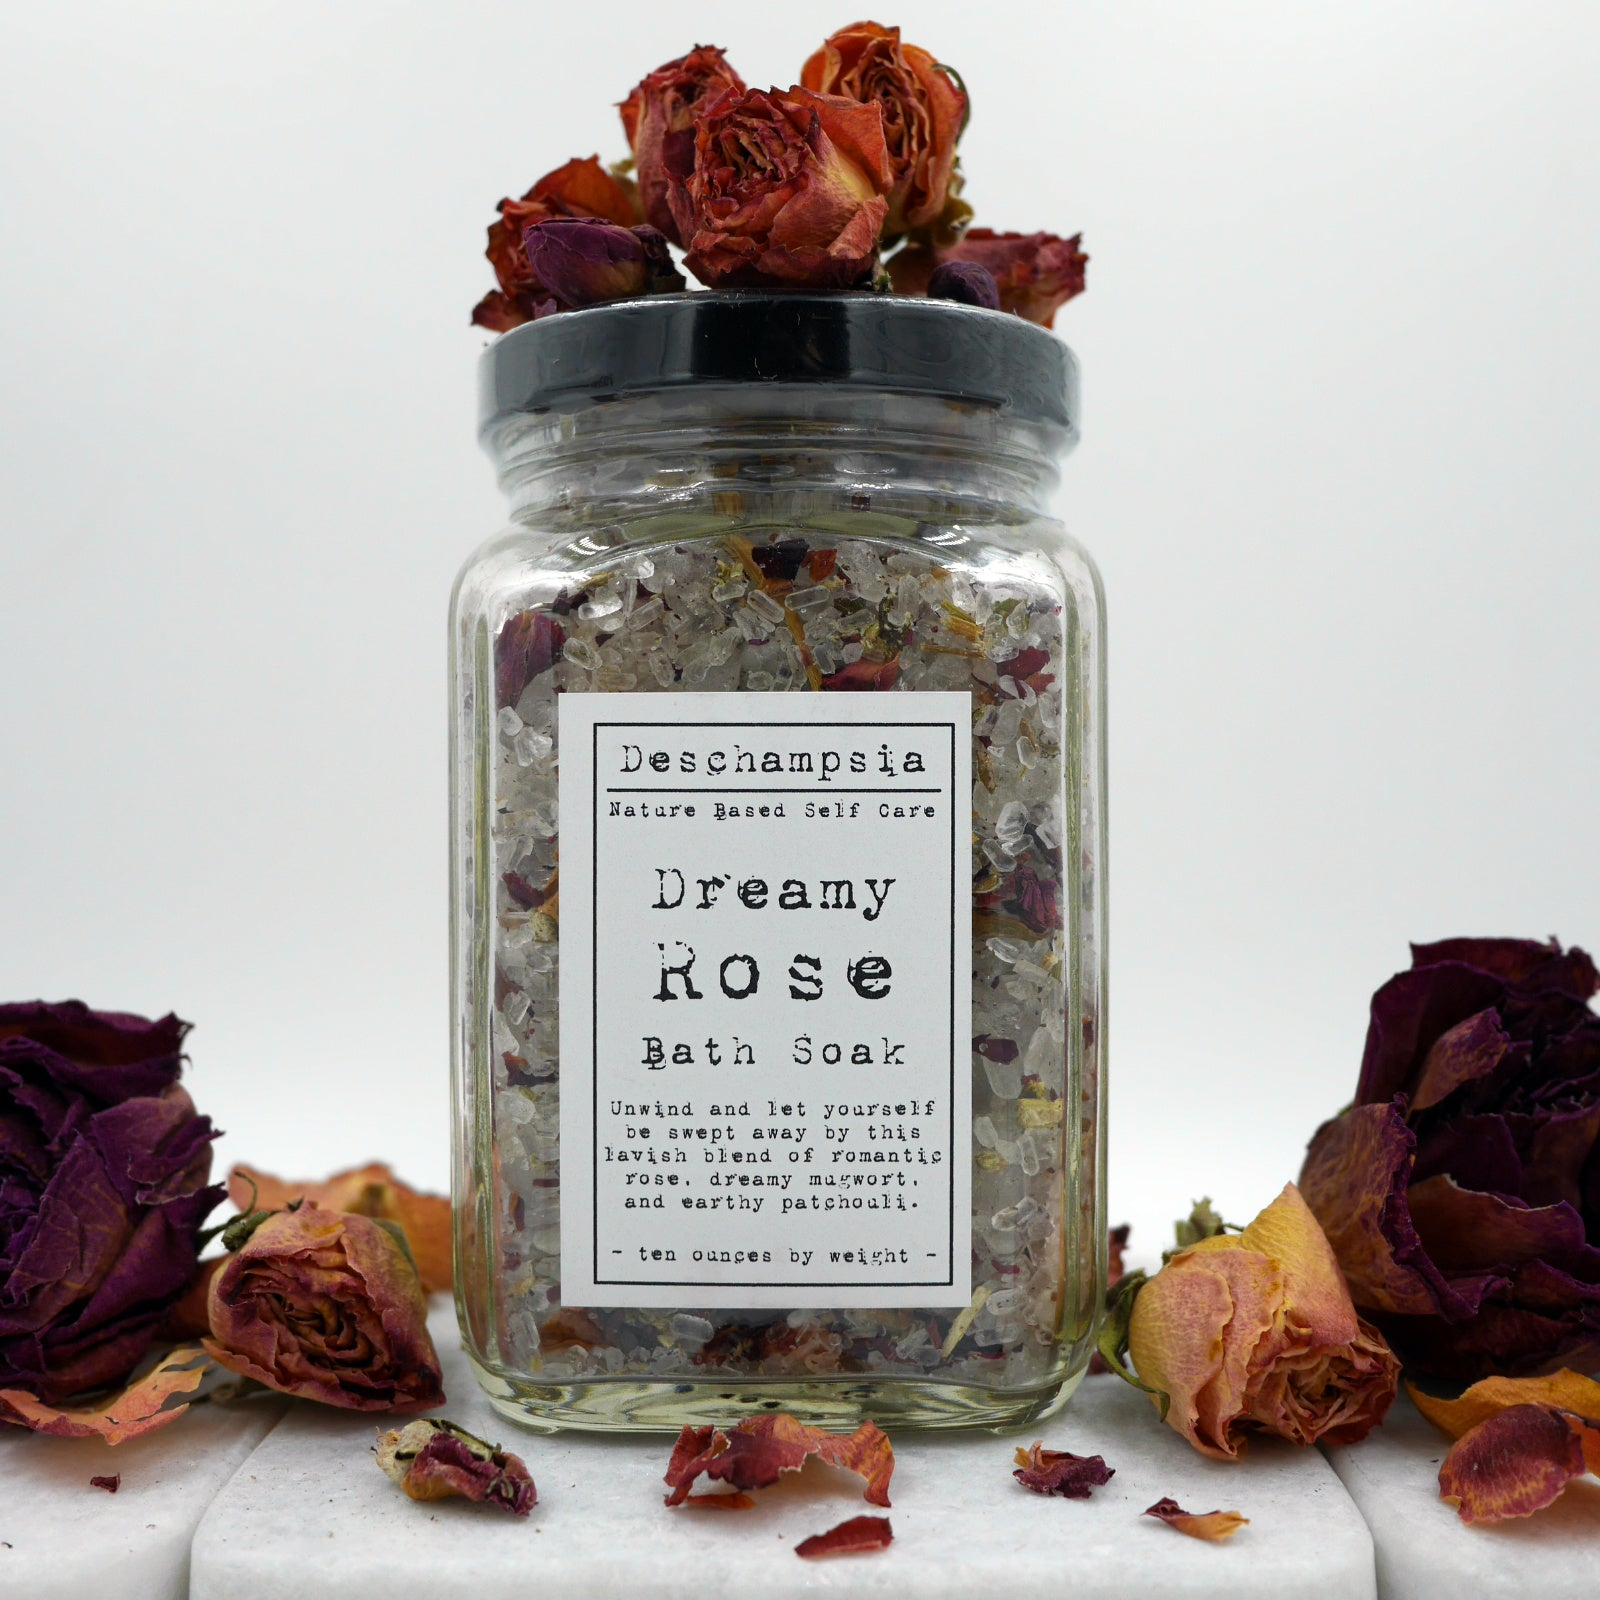 Dreamy Rose Bath Soak - Deschampsia - Nature Based Self Care